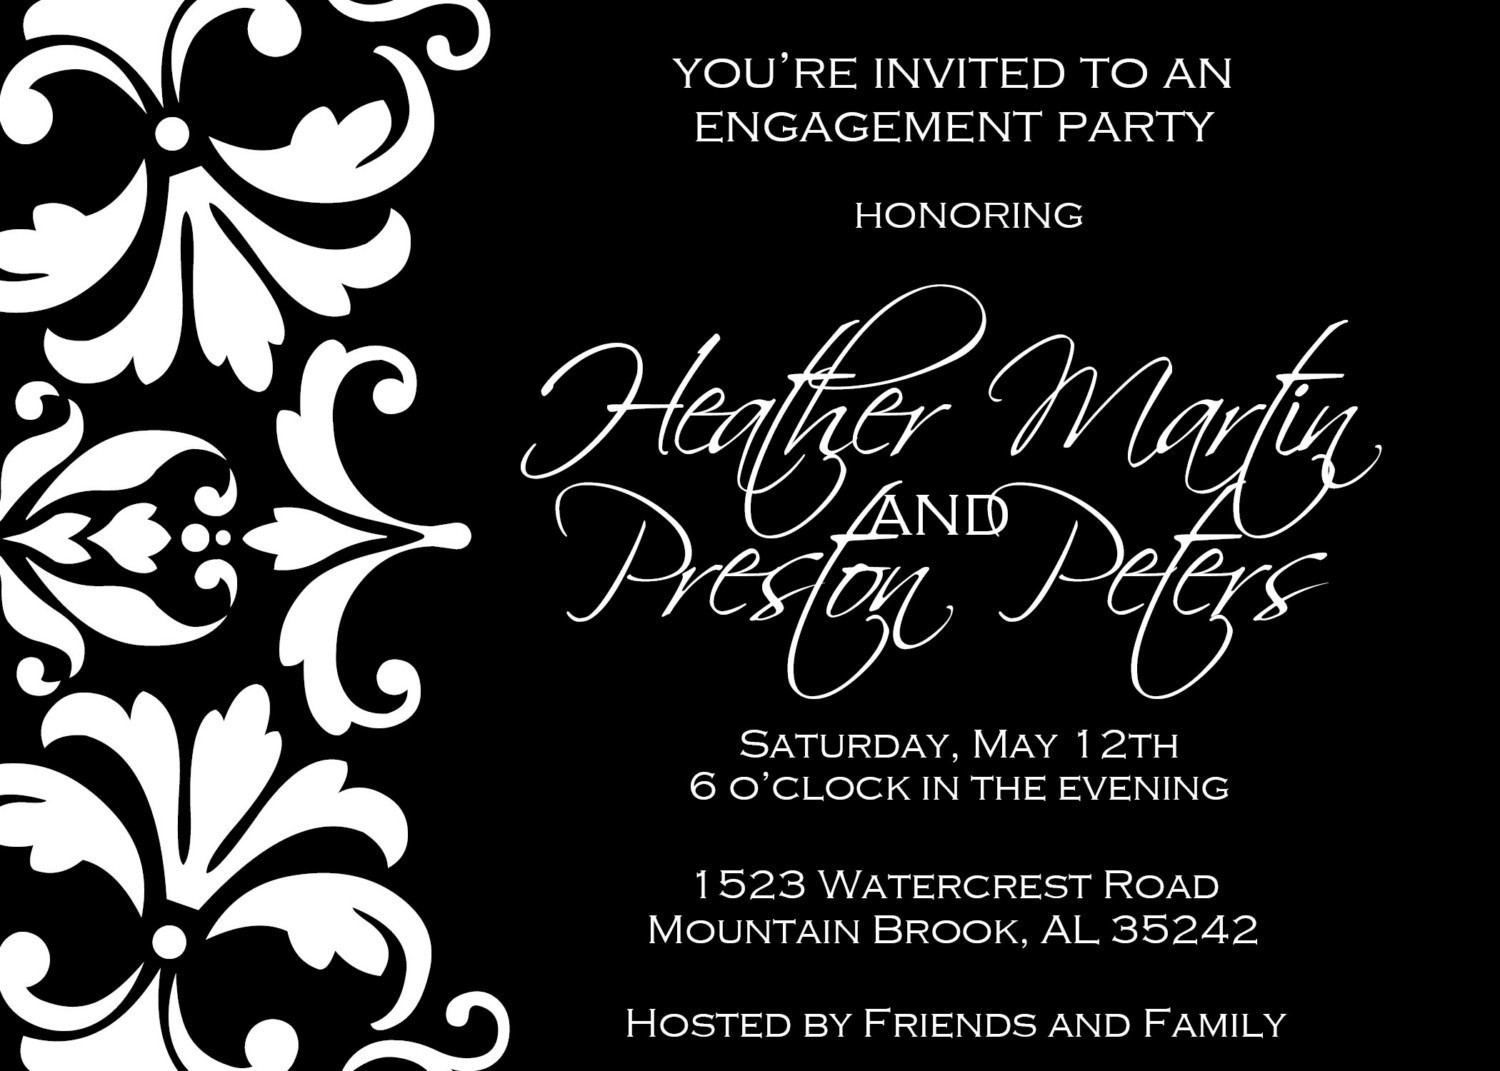 Party Invitation Black And White